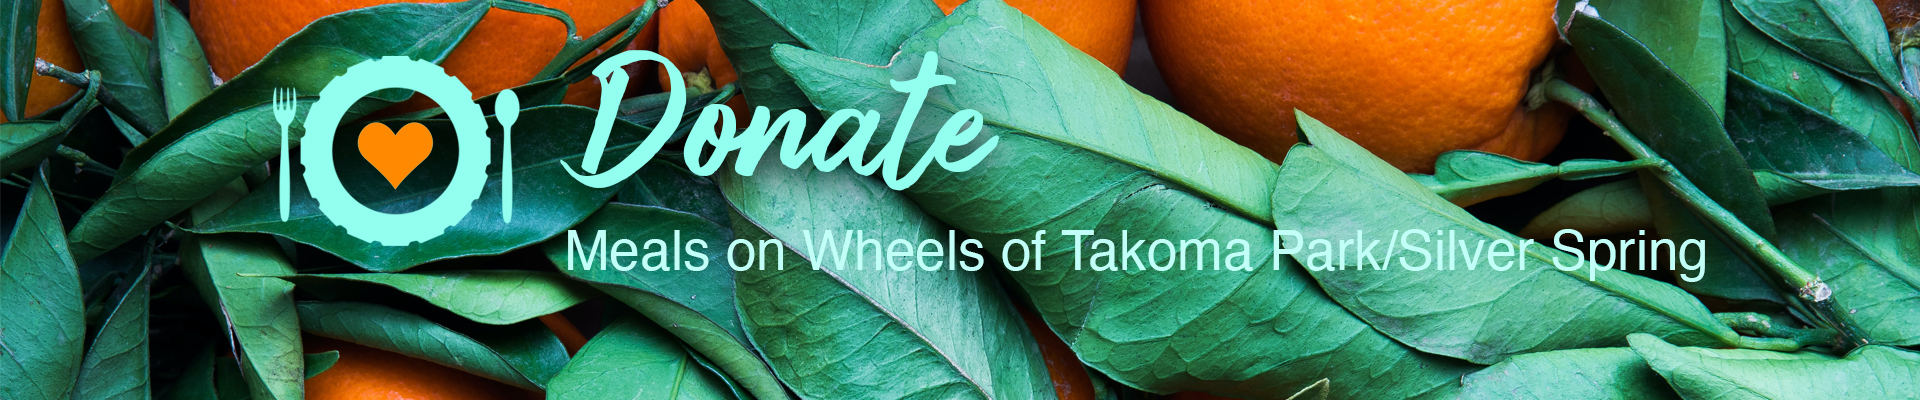 Meals on Wheels Takoma/Silver Spring MD